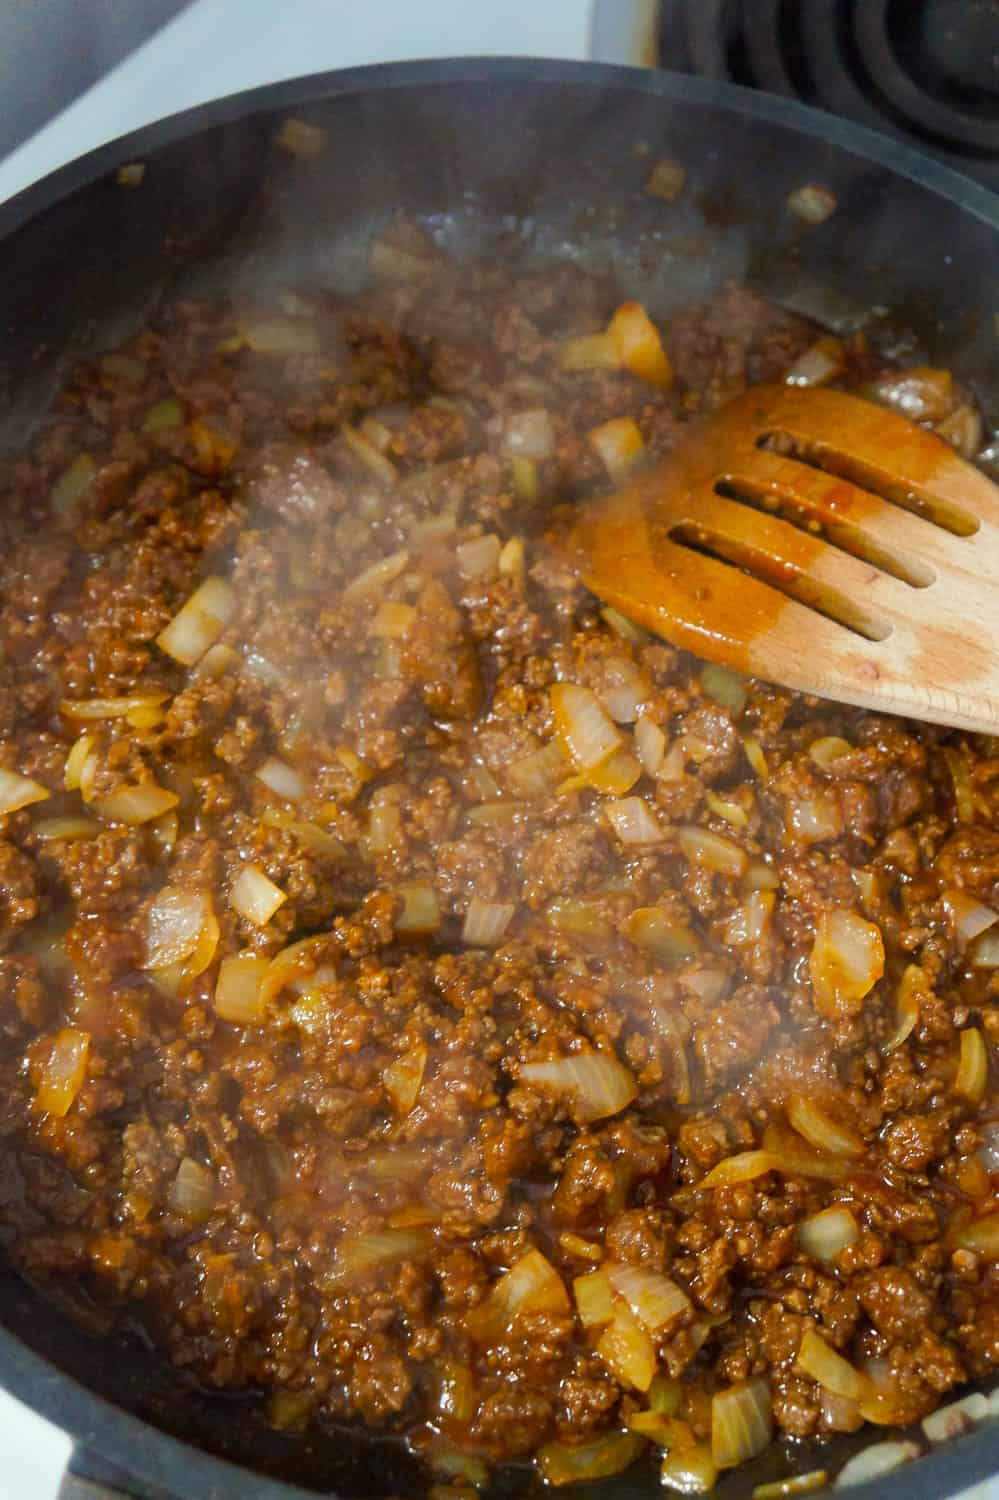 sloppy joe filling in a frying pan